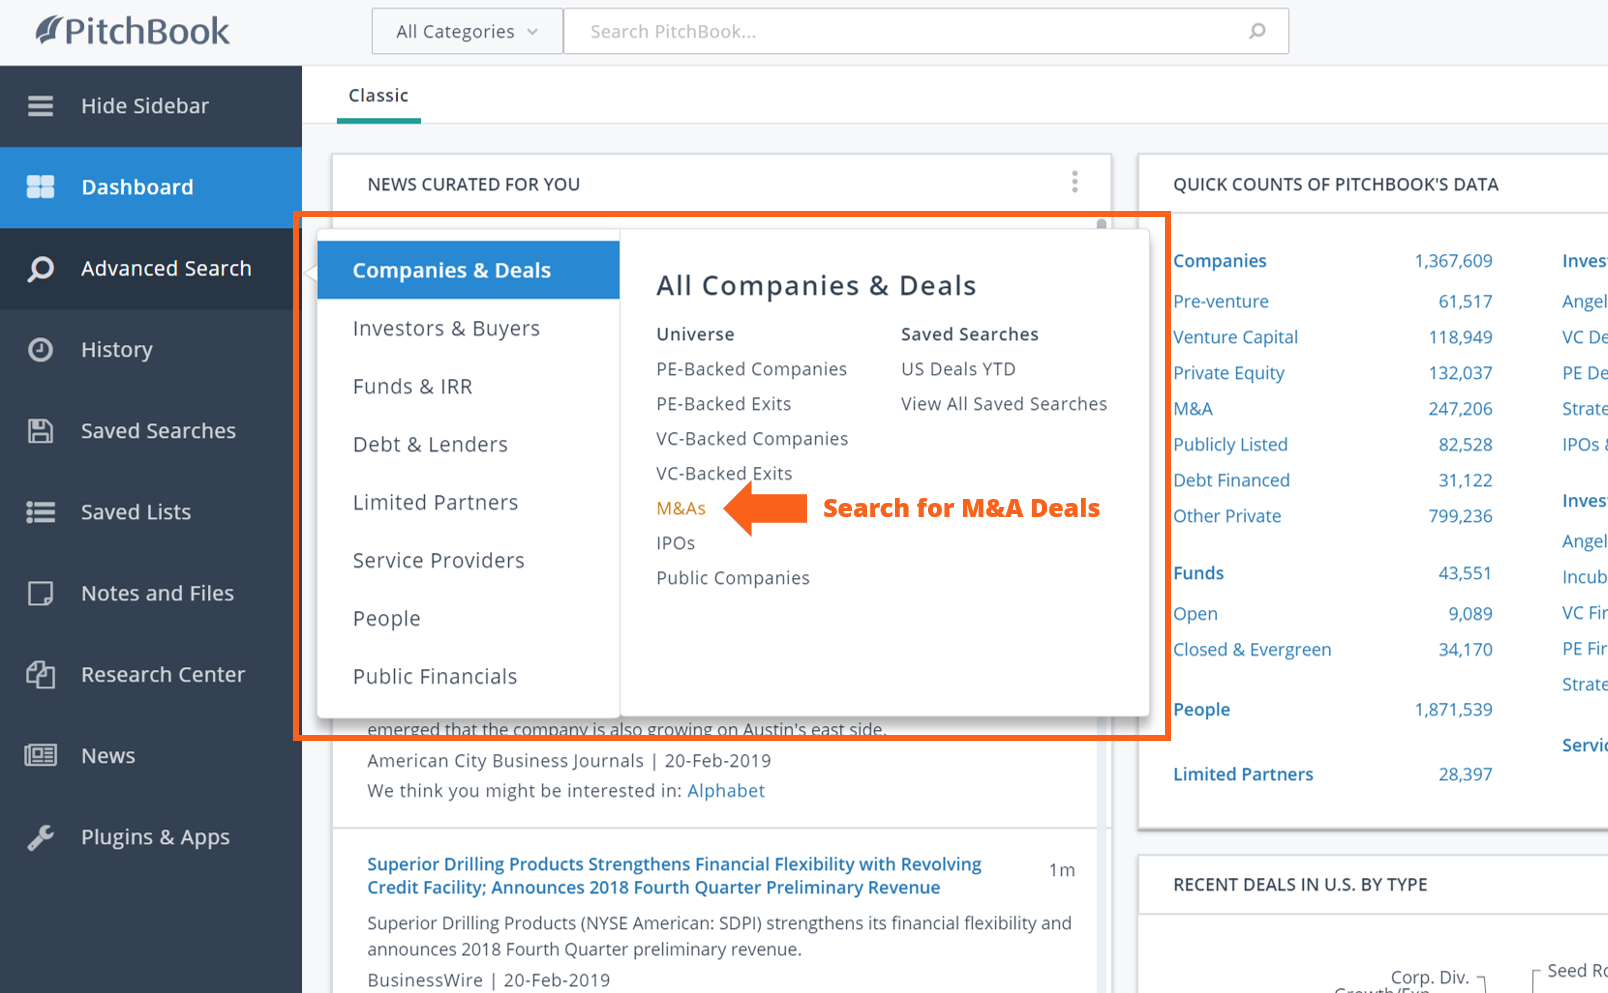 PitchBook search for m&a deals